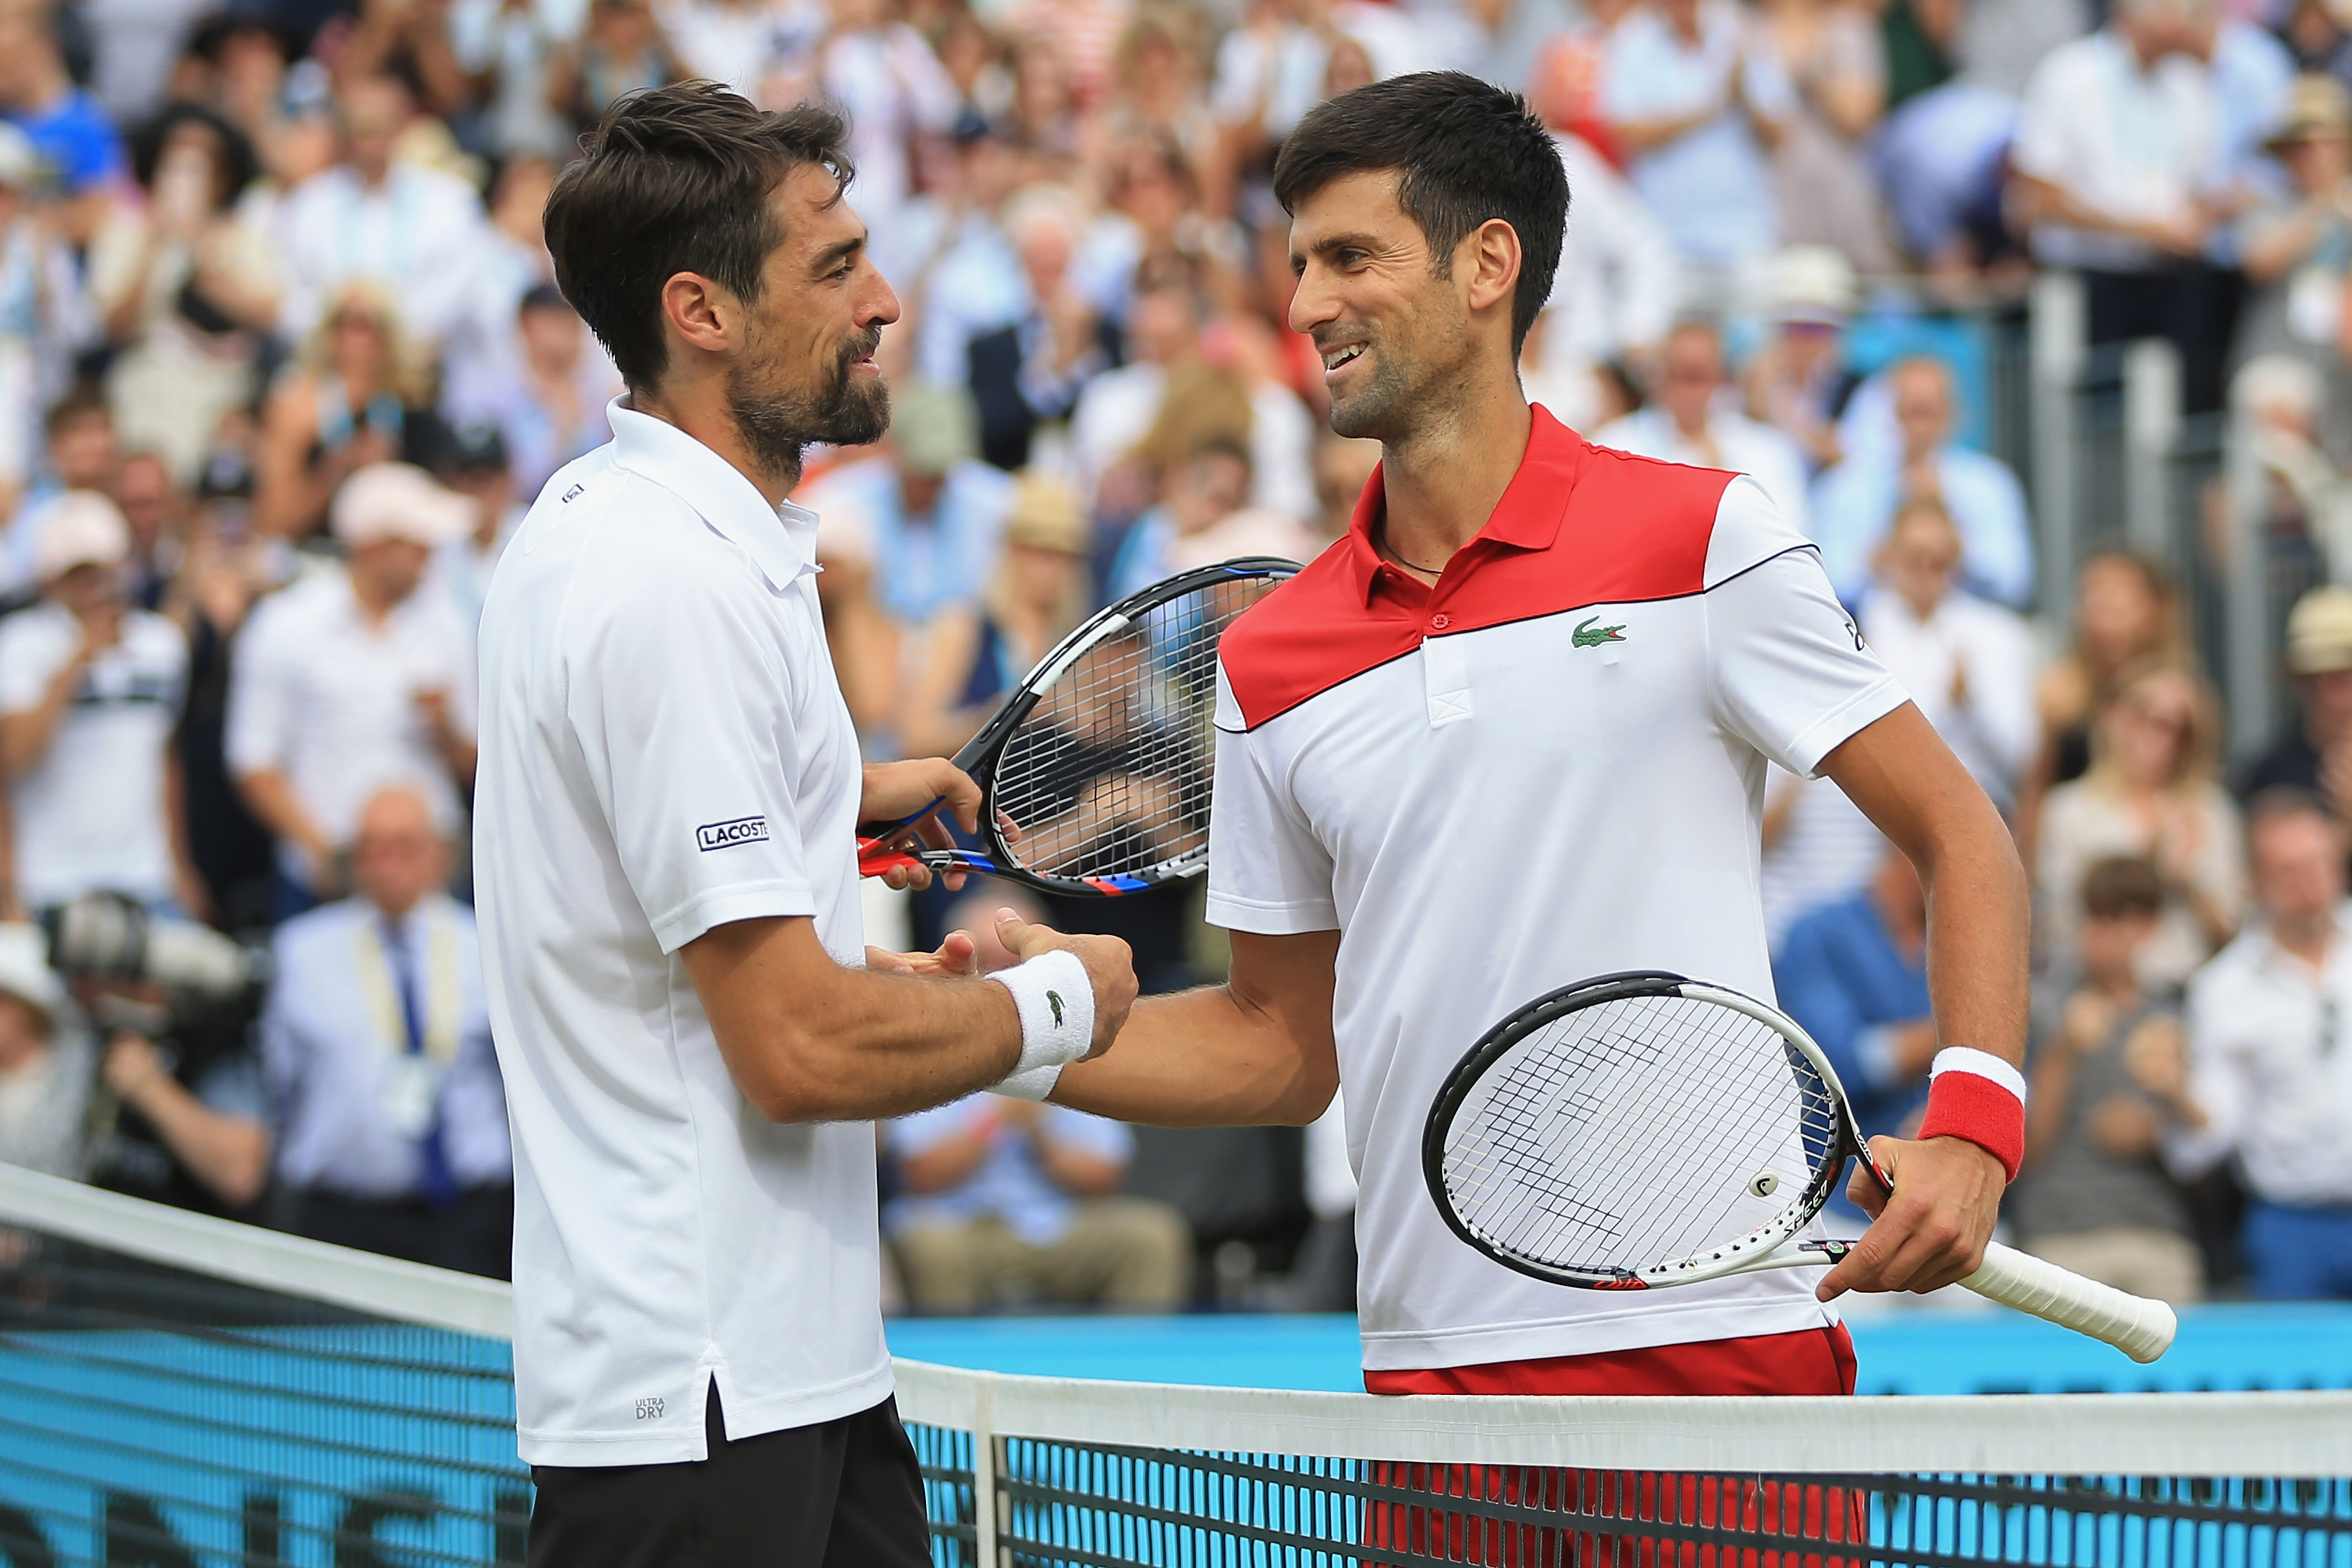 Novak Djokovic smiles and shakes hands with Jeremy Chardy after defeating him to reach the final